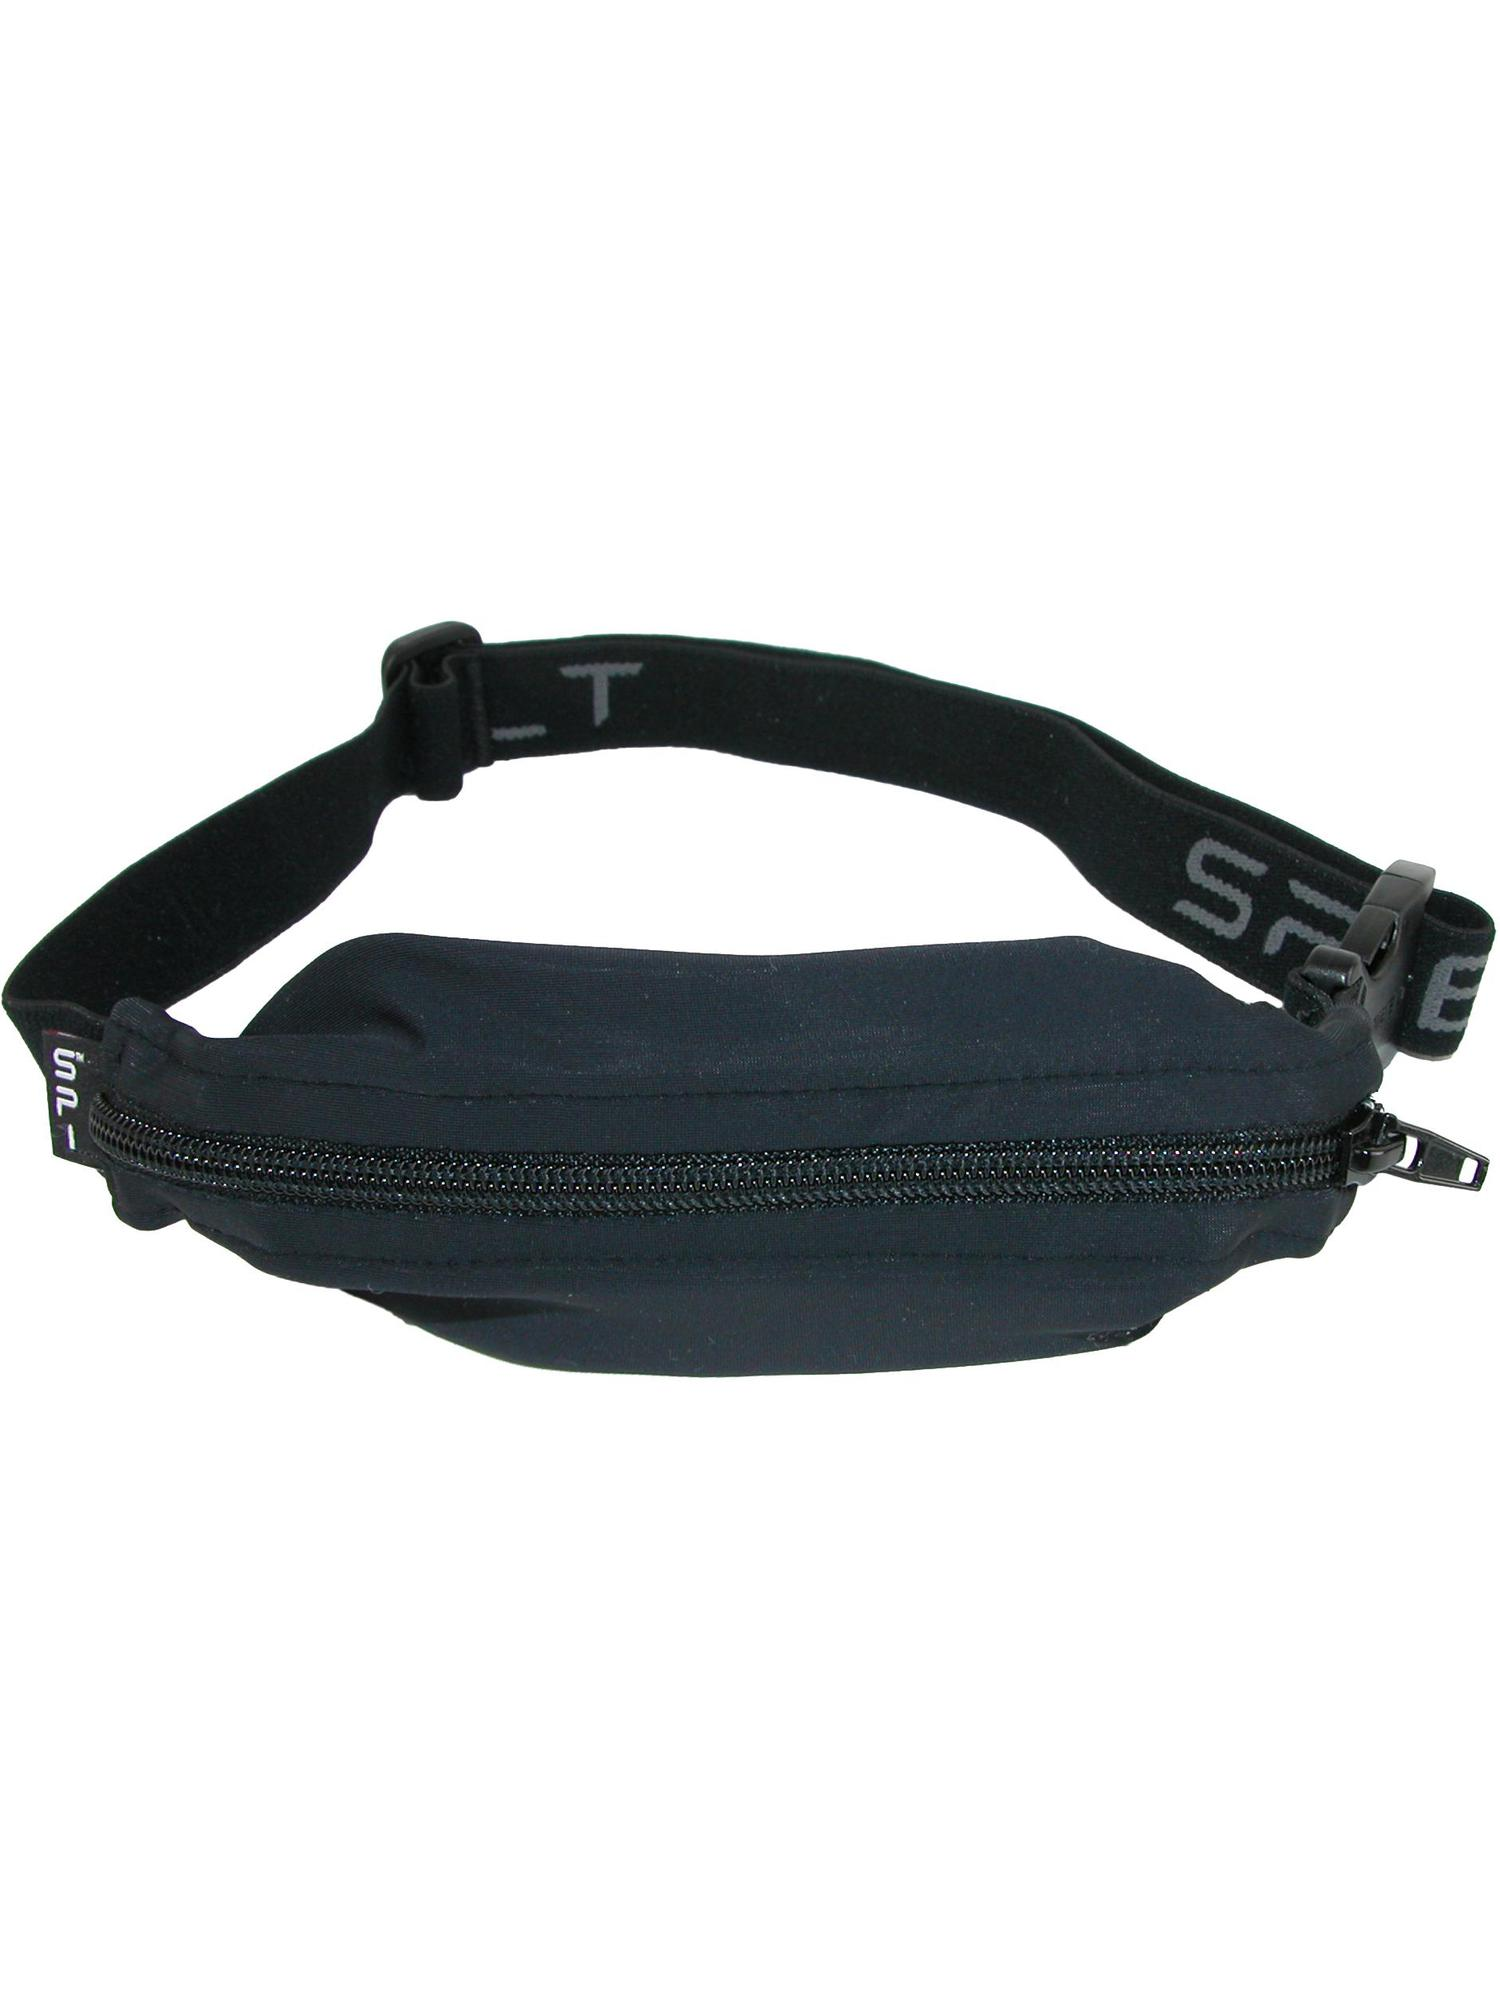 Spibelt Flex Front Buckle Workout Waist Pack Size One Black Original